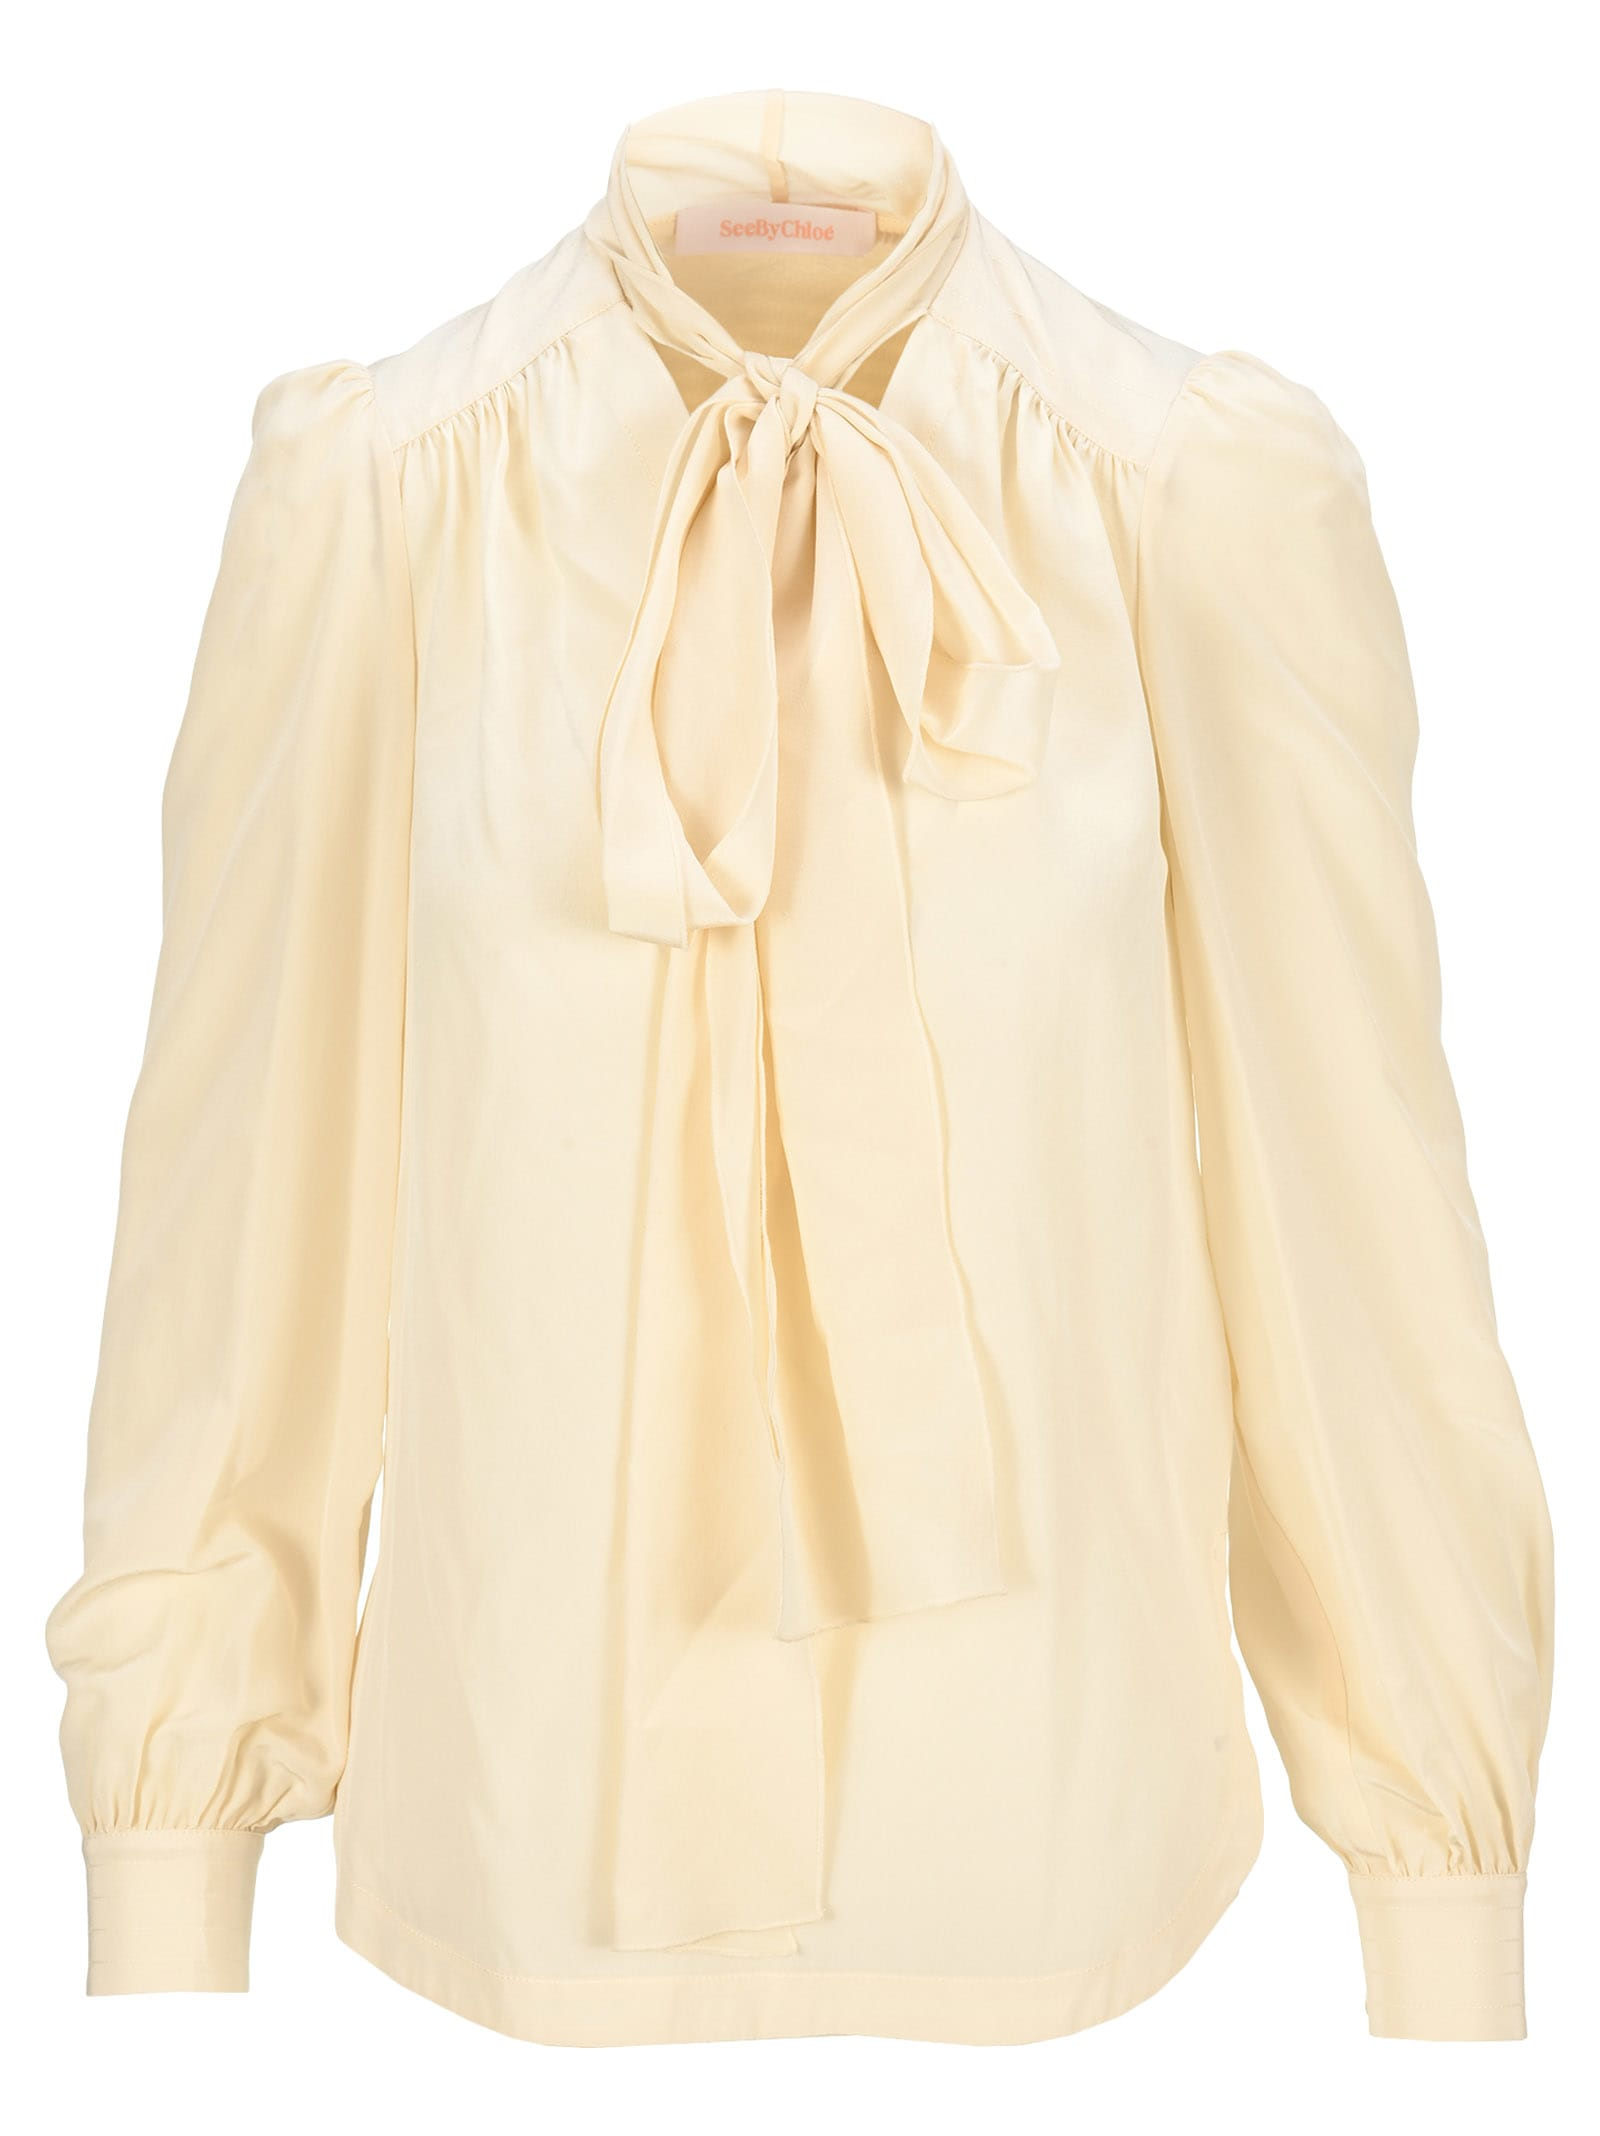 See By Chloé SEE BY CHLOE BOW SHIRT